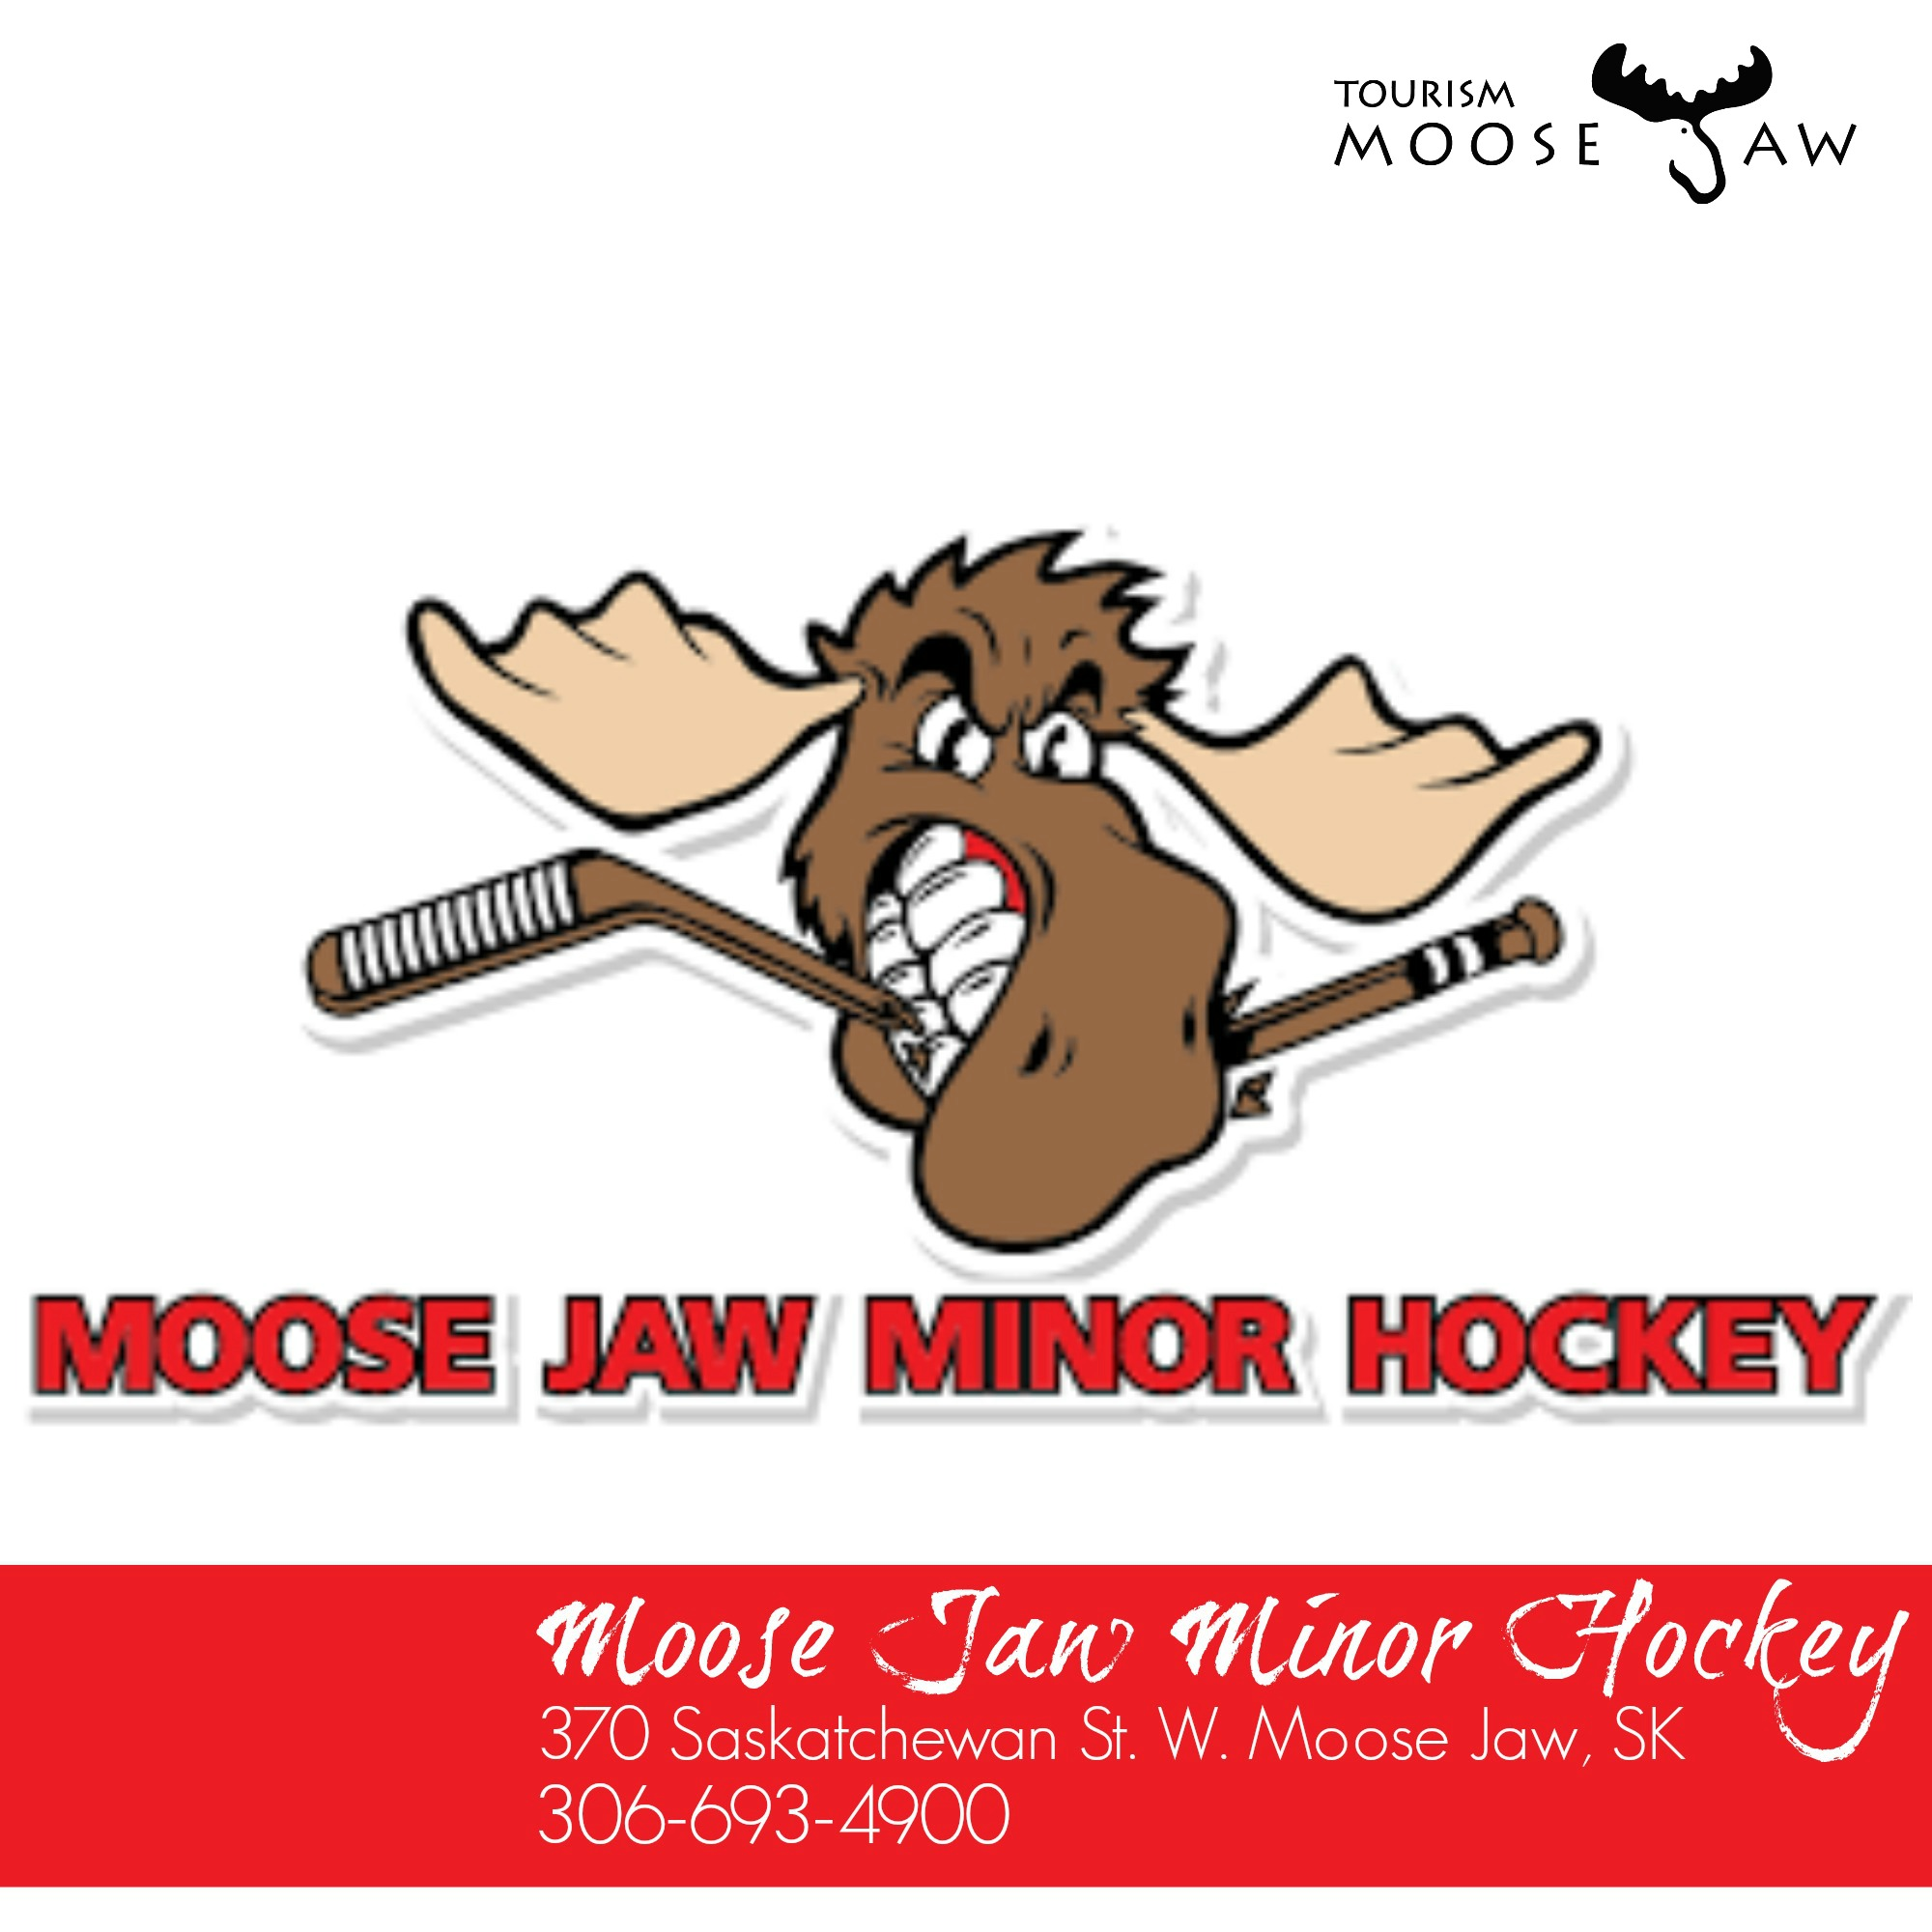 moose jaw minor hockey.jpg